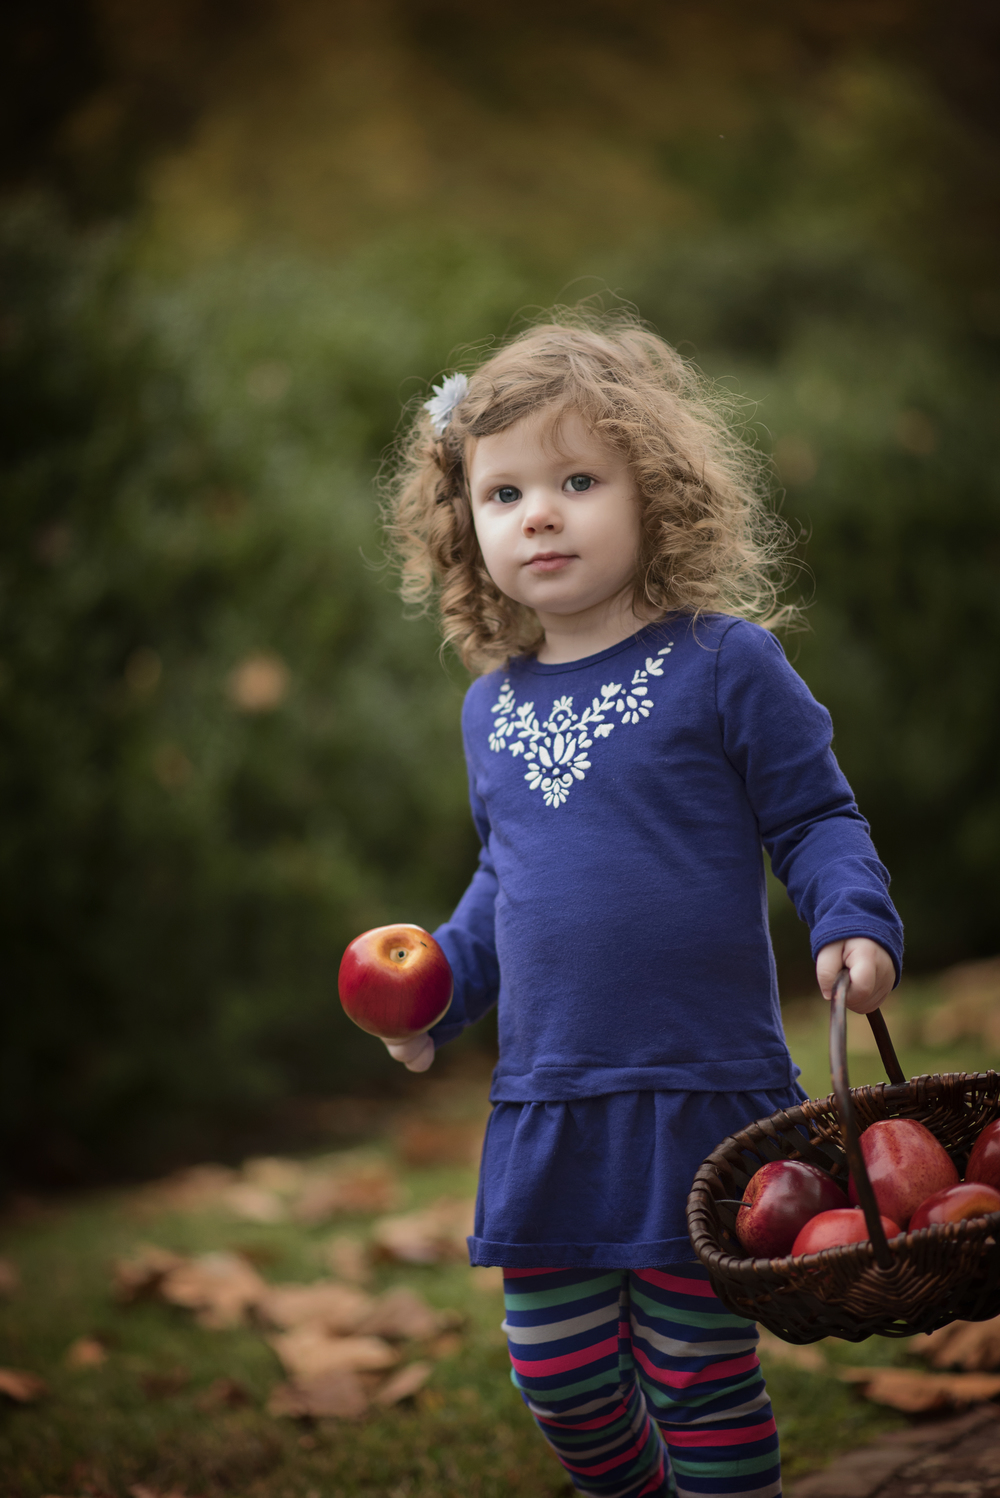 Little Curly haired girl with apples in a basket Kate Montaner Childrens Photographer